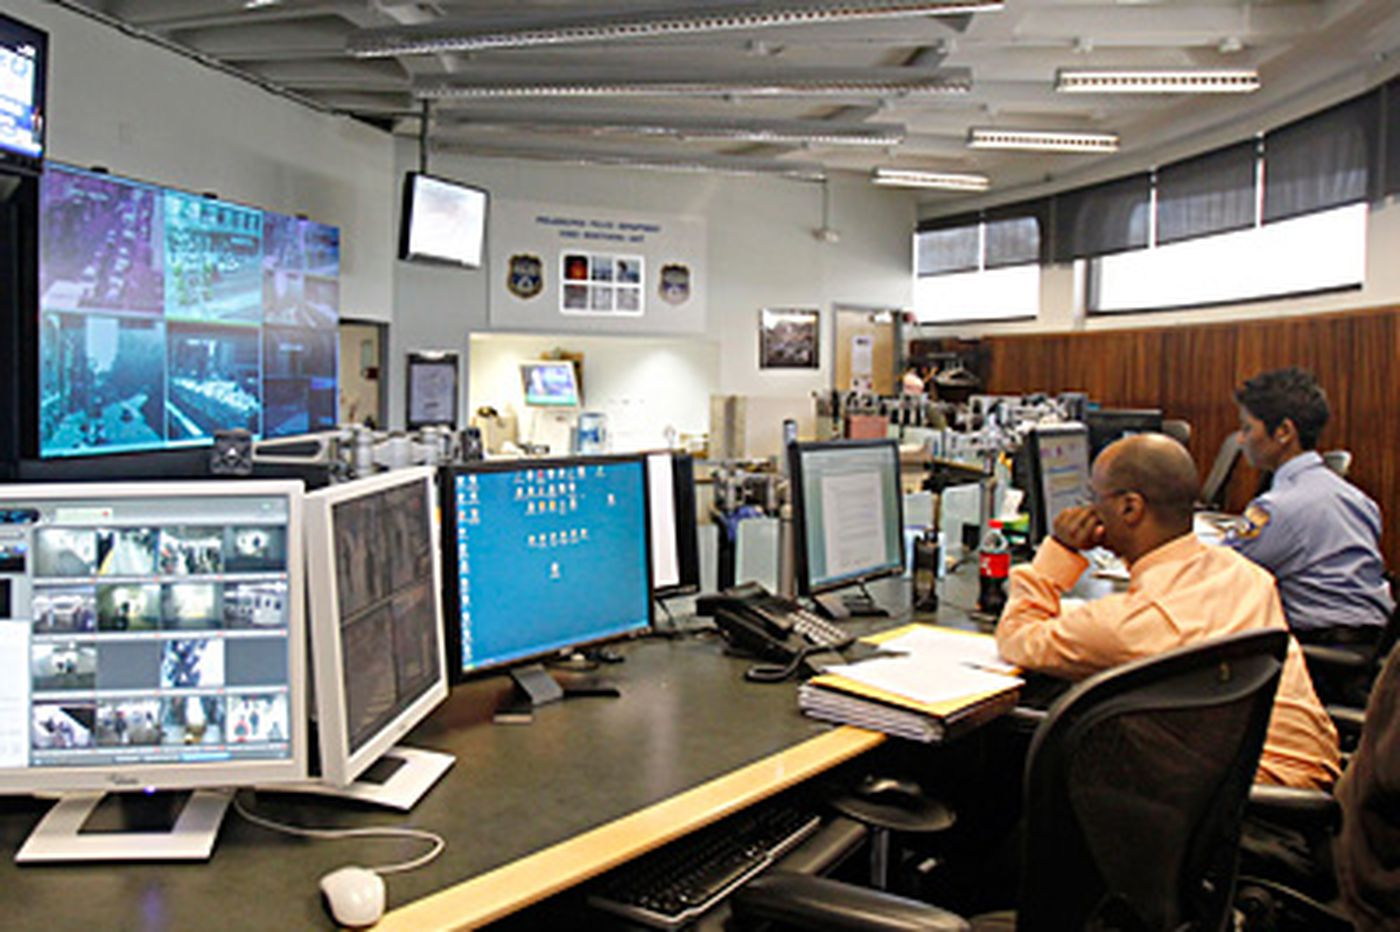 Philadelphia police now have 24-hour real-time surveillance center